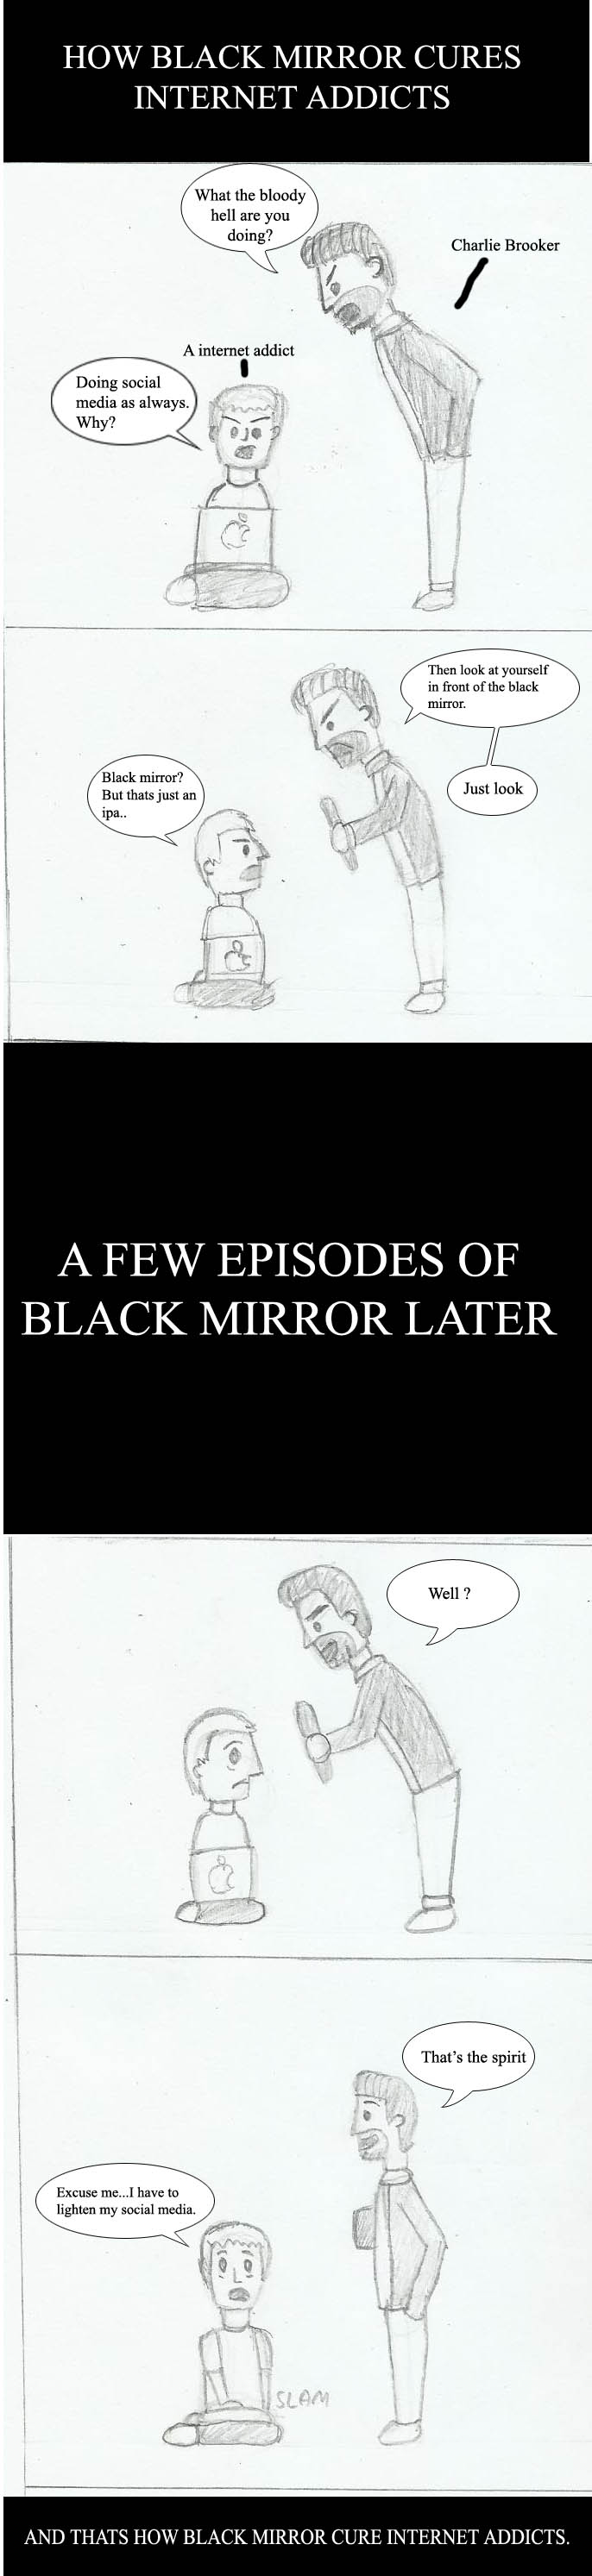 How black mirror cures internet addicts by joey2132132